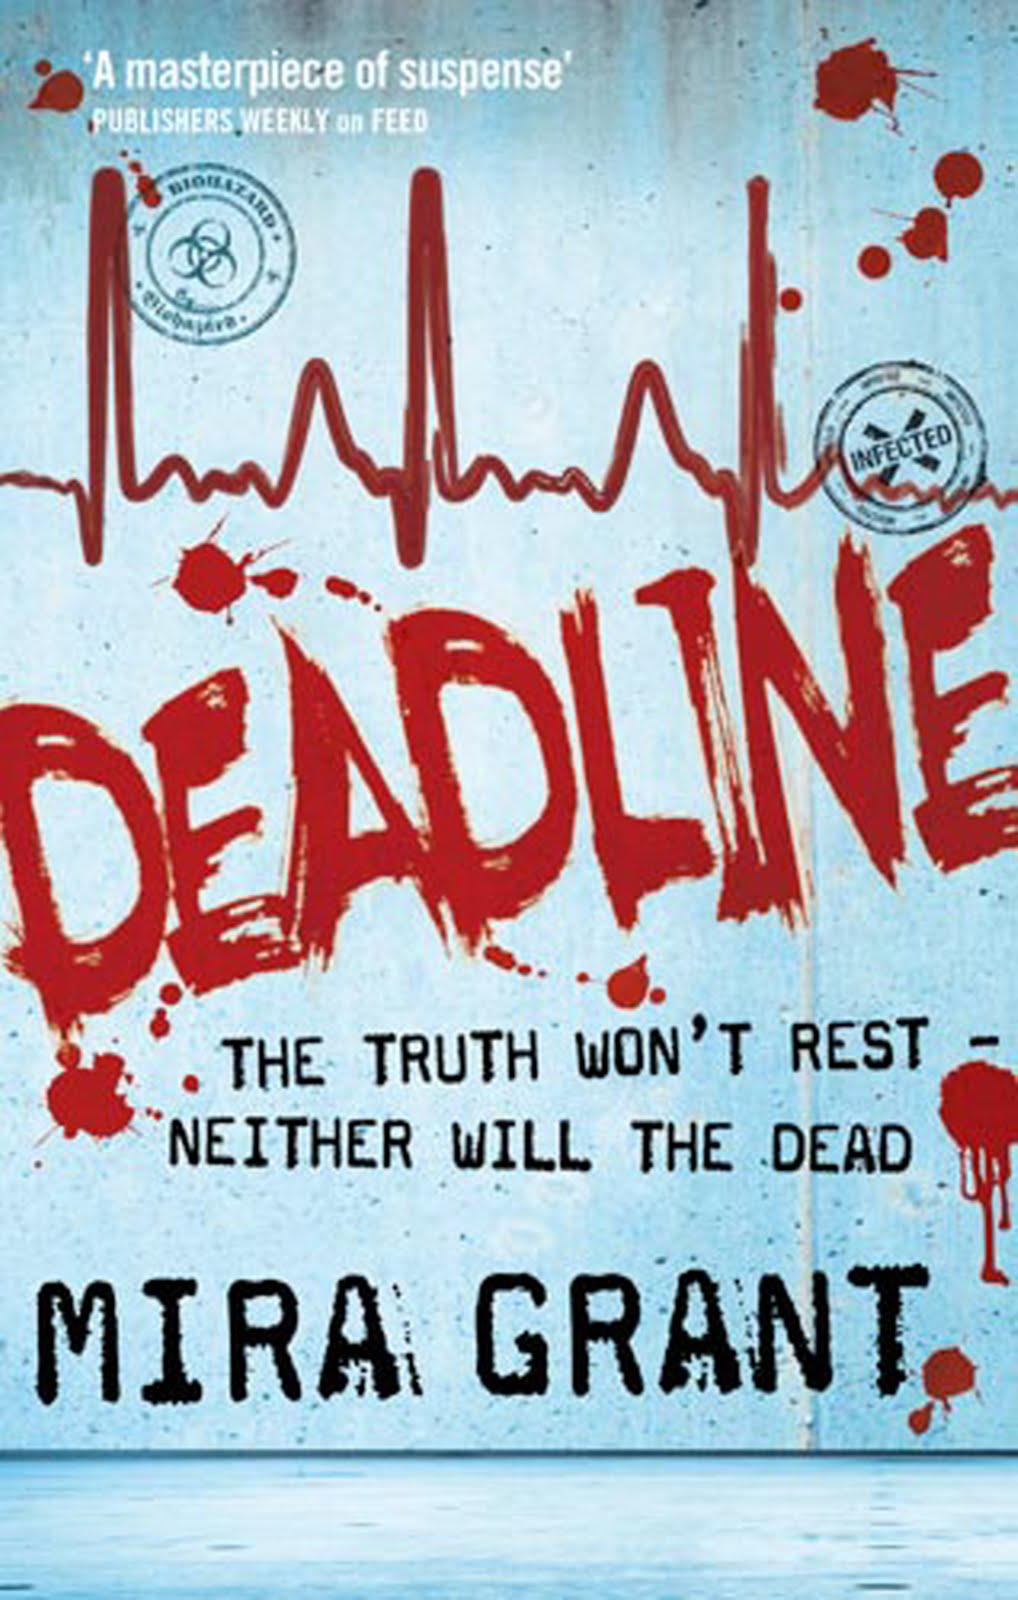 Deadline By Mira Grant  Book Review